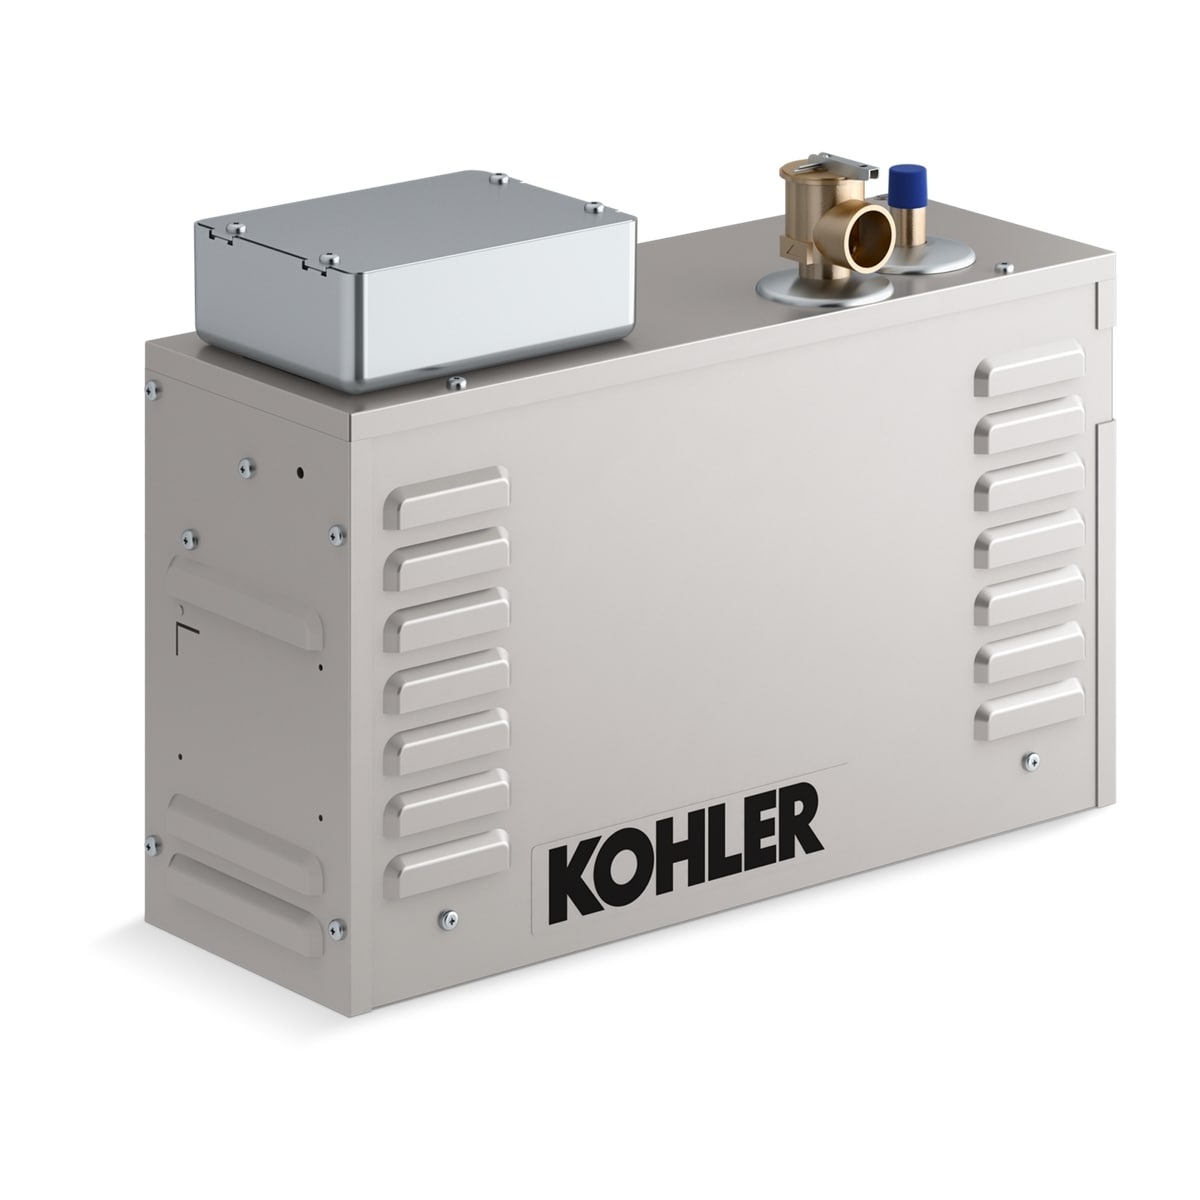 Kohler K-5529-NA N/A Invigoration 9kW Residential Steam Generator ...